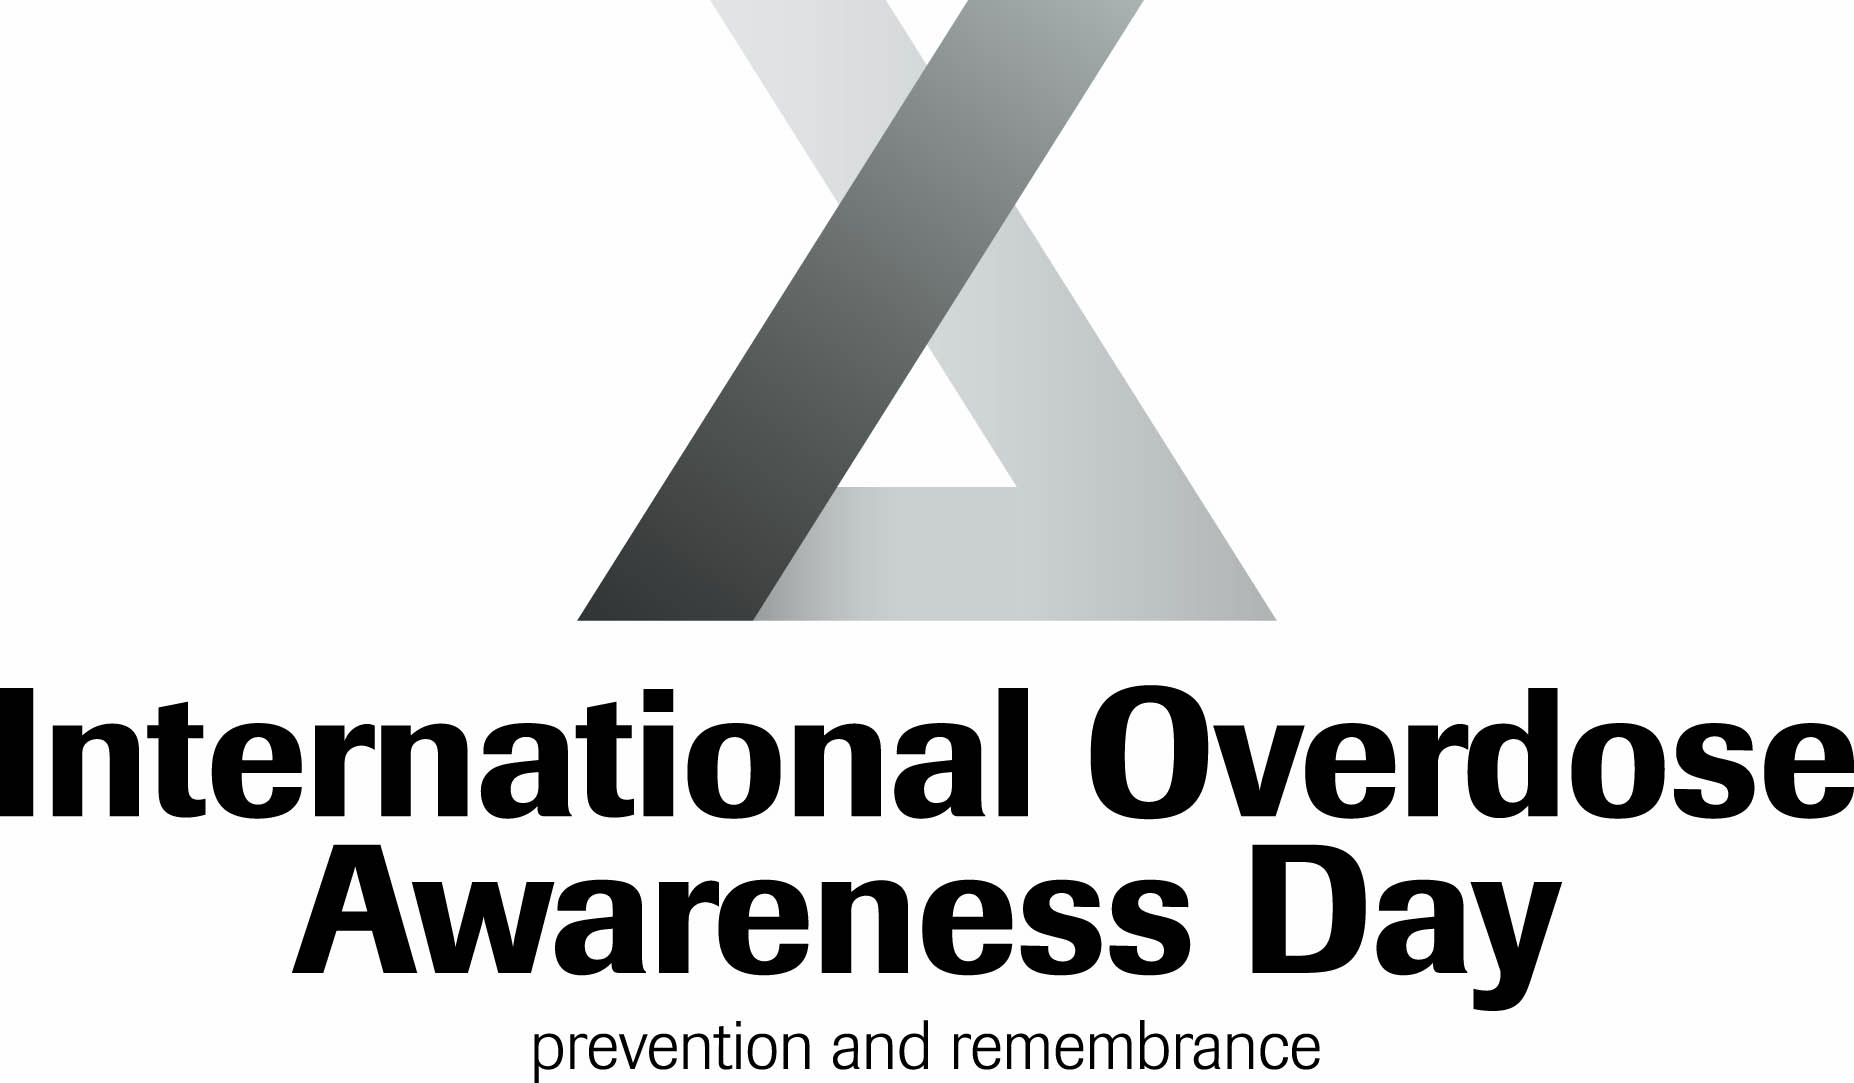 Problem - Overdose can be the result of someone deliberately self-harming, seeking to achieve a sense of intoxication or taking prescription or over-the-counter medications in the wrong amount.